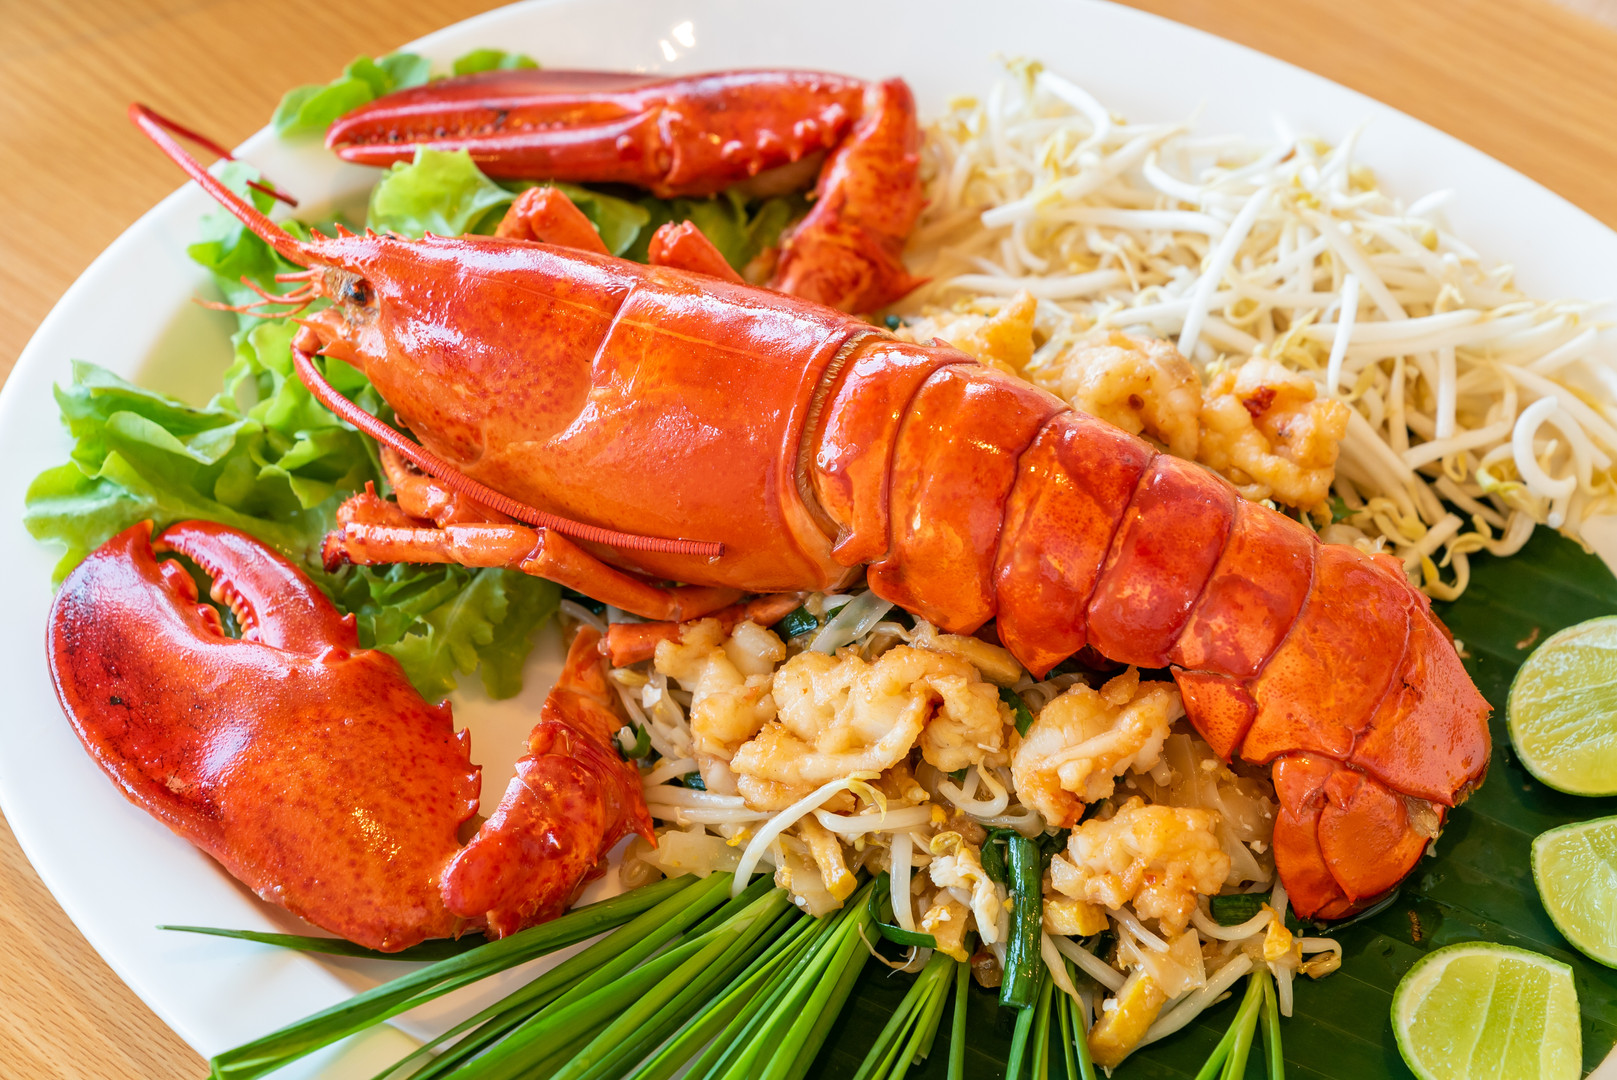 bigstock-Lobster-Pad-thai-stir-fried-T-2